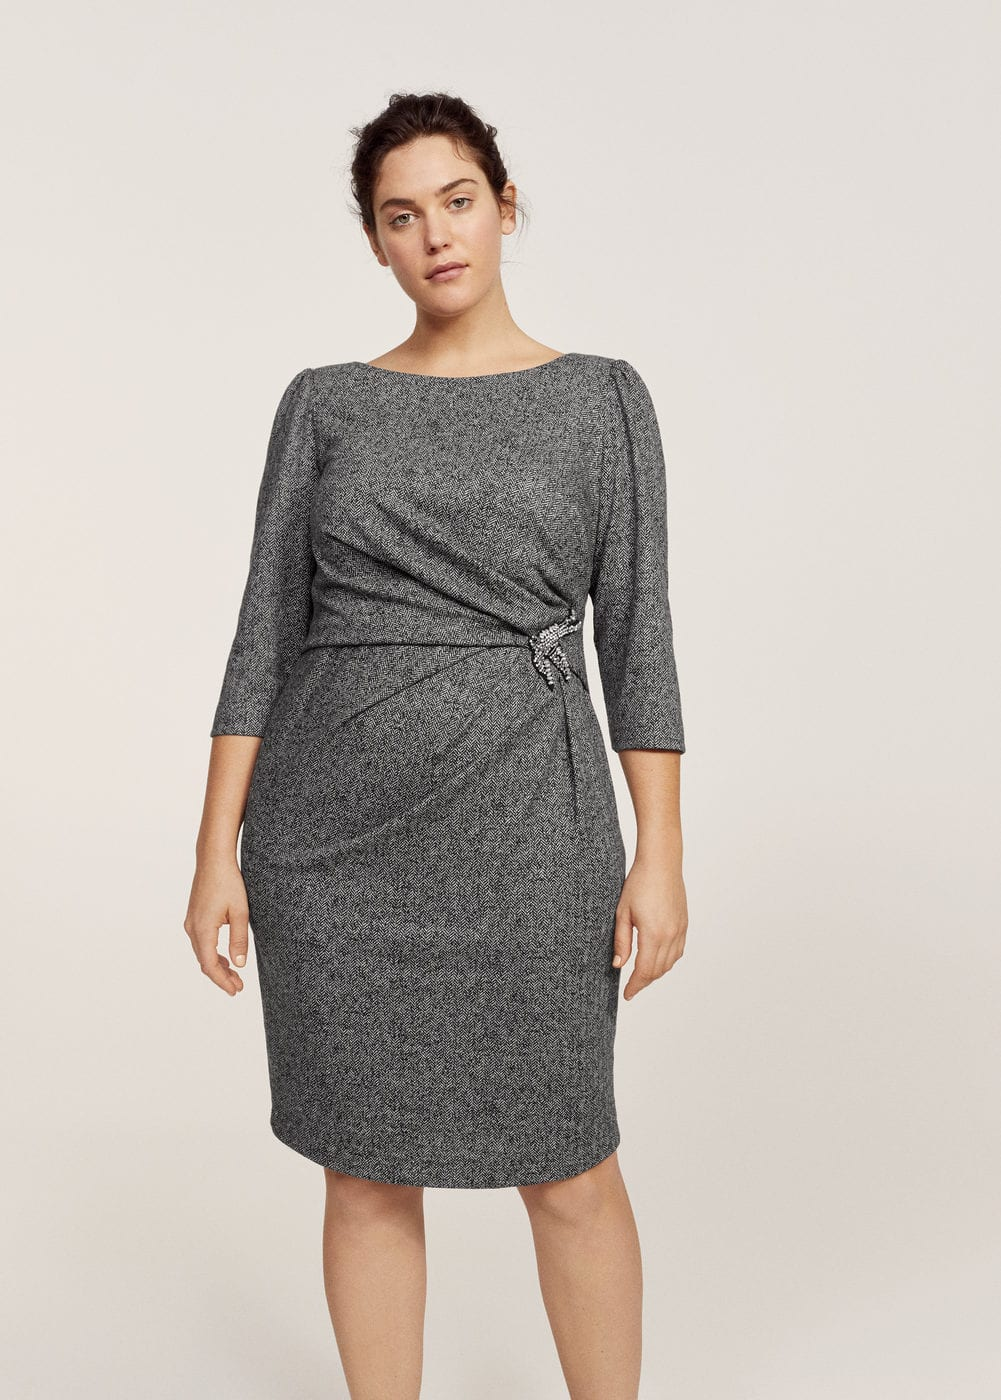 Herringbone appliqué dress | VIOLETA BY MANGO